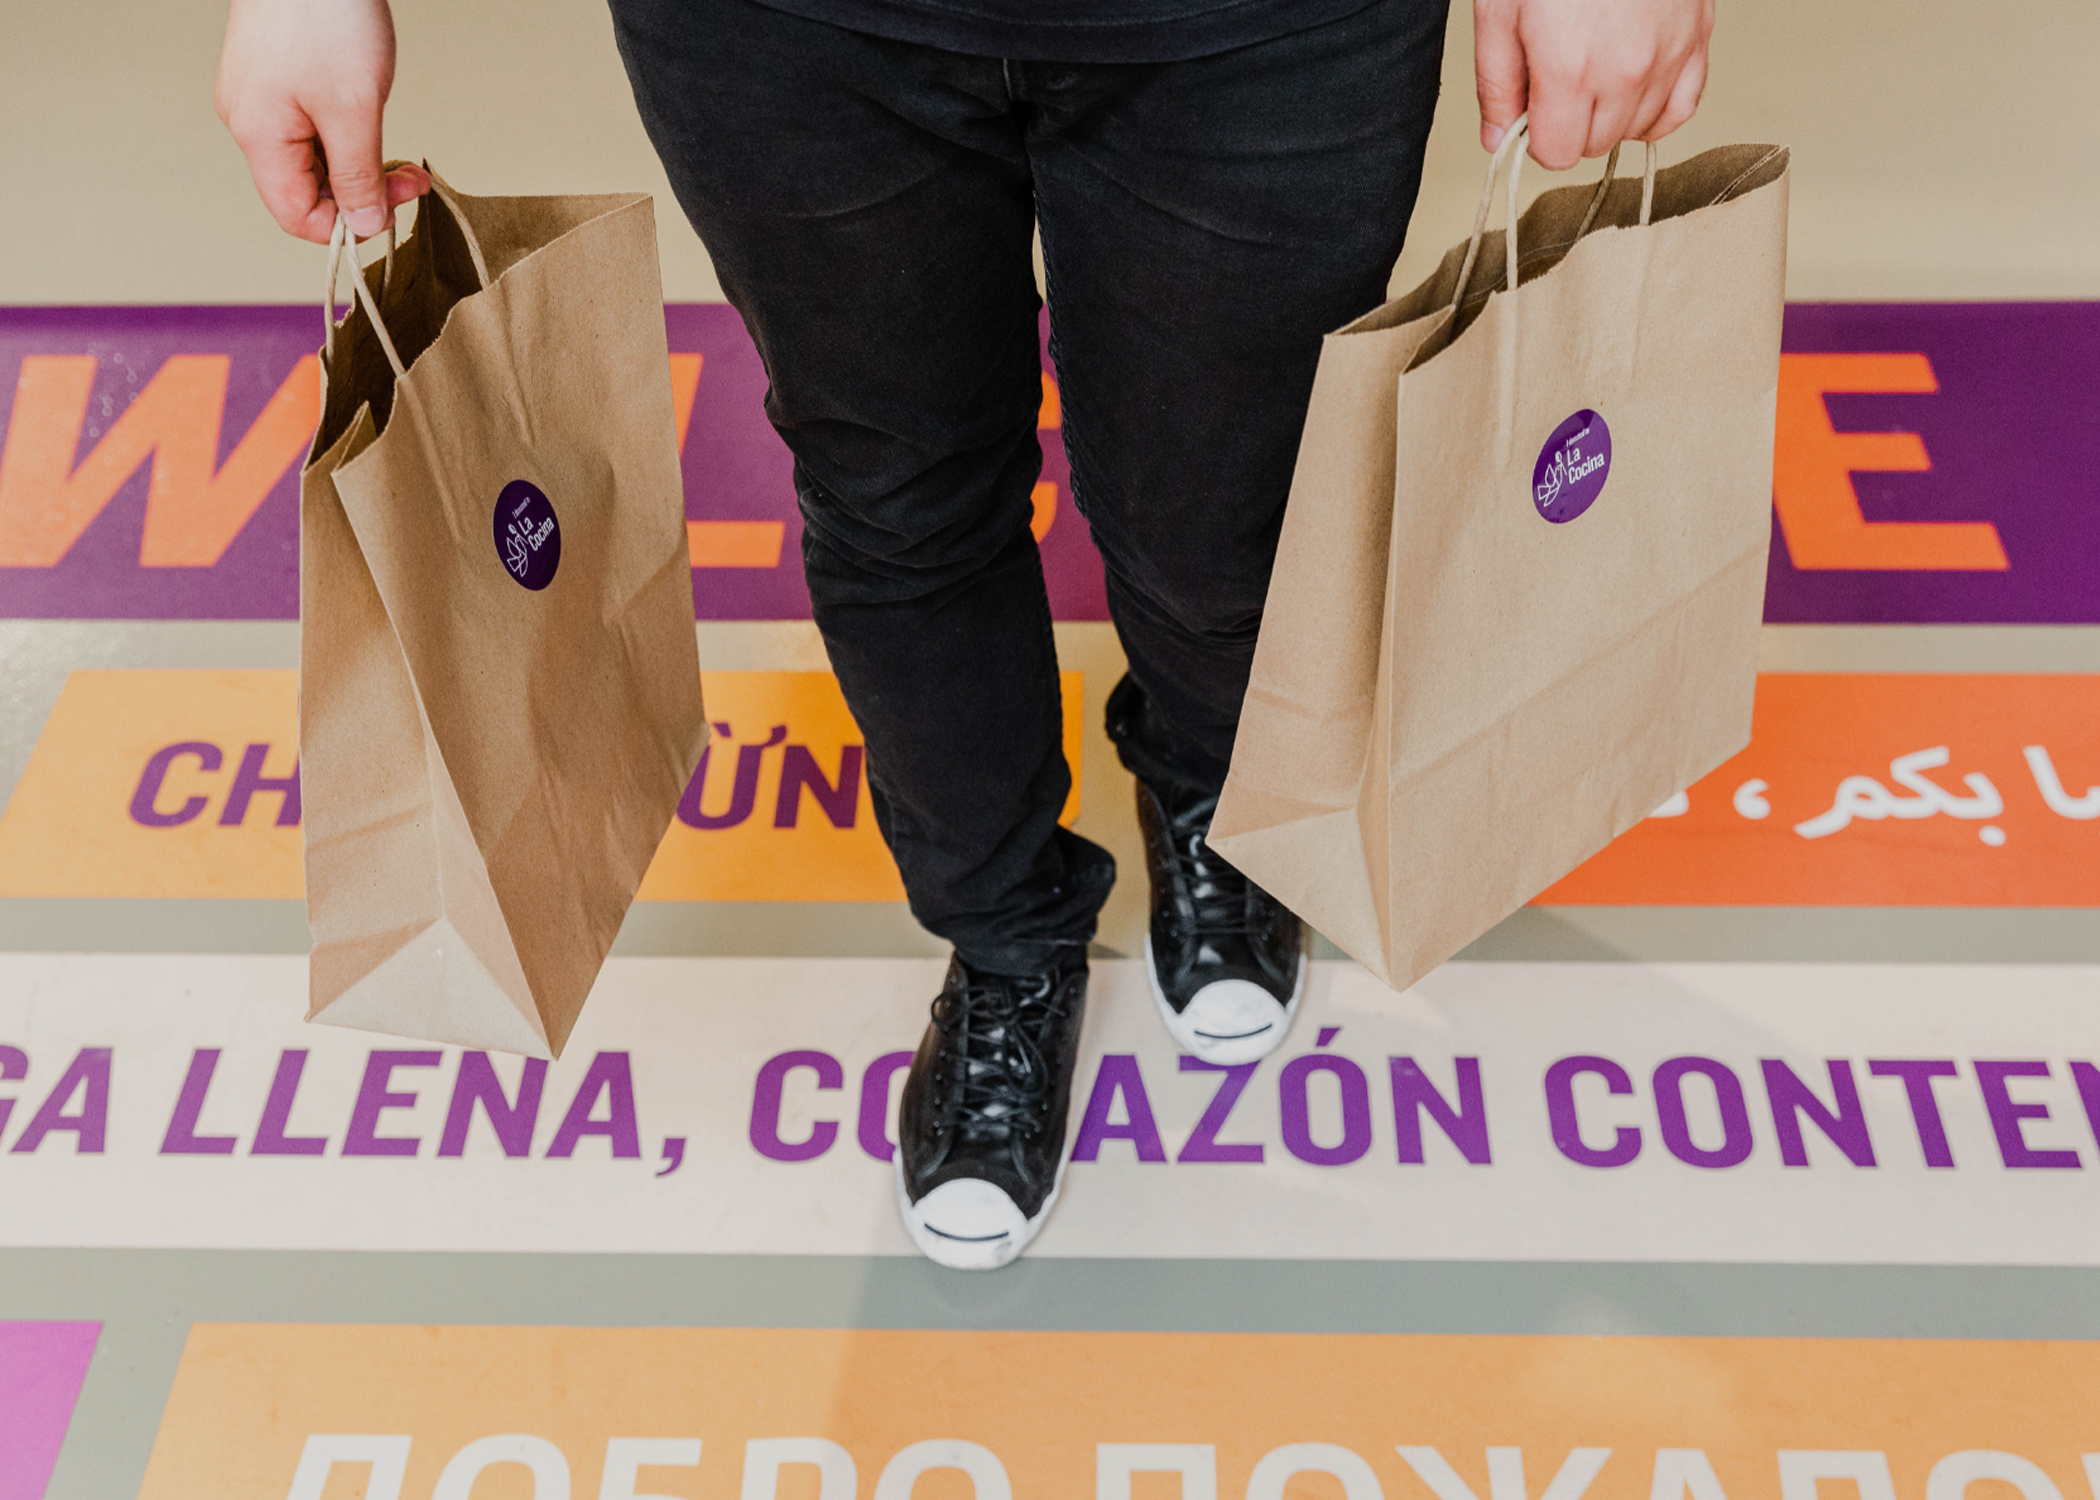 A person in black pants walking across the floor with take-out food bags.